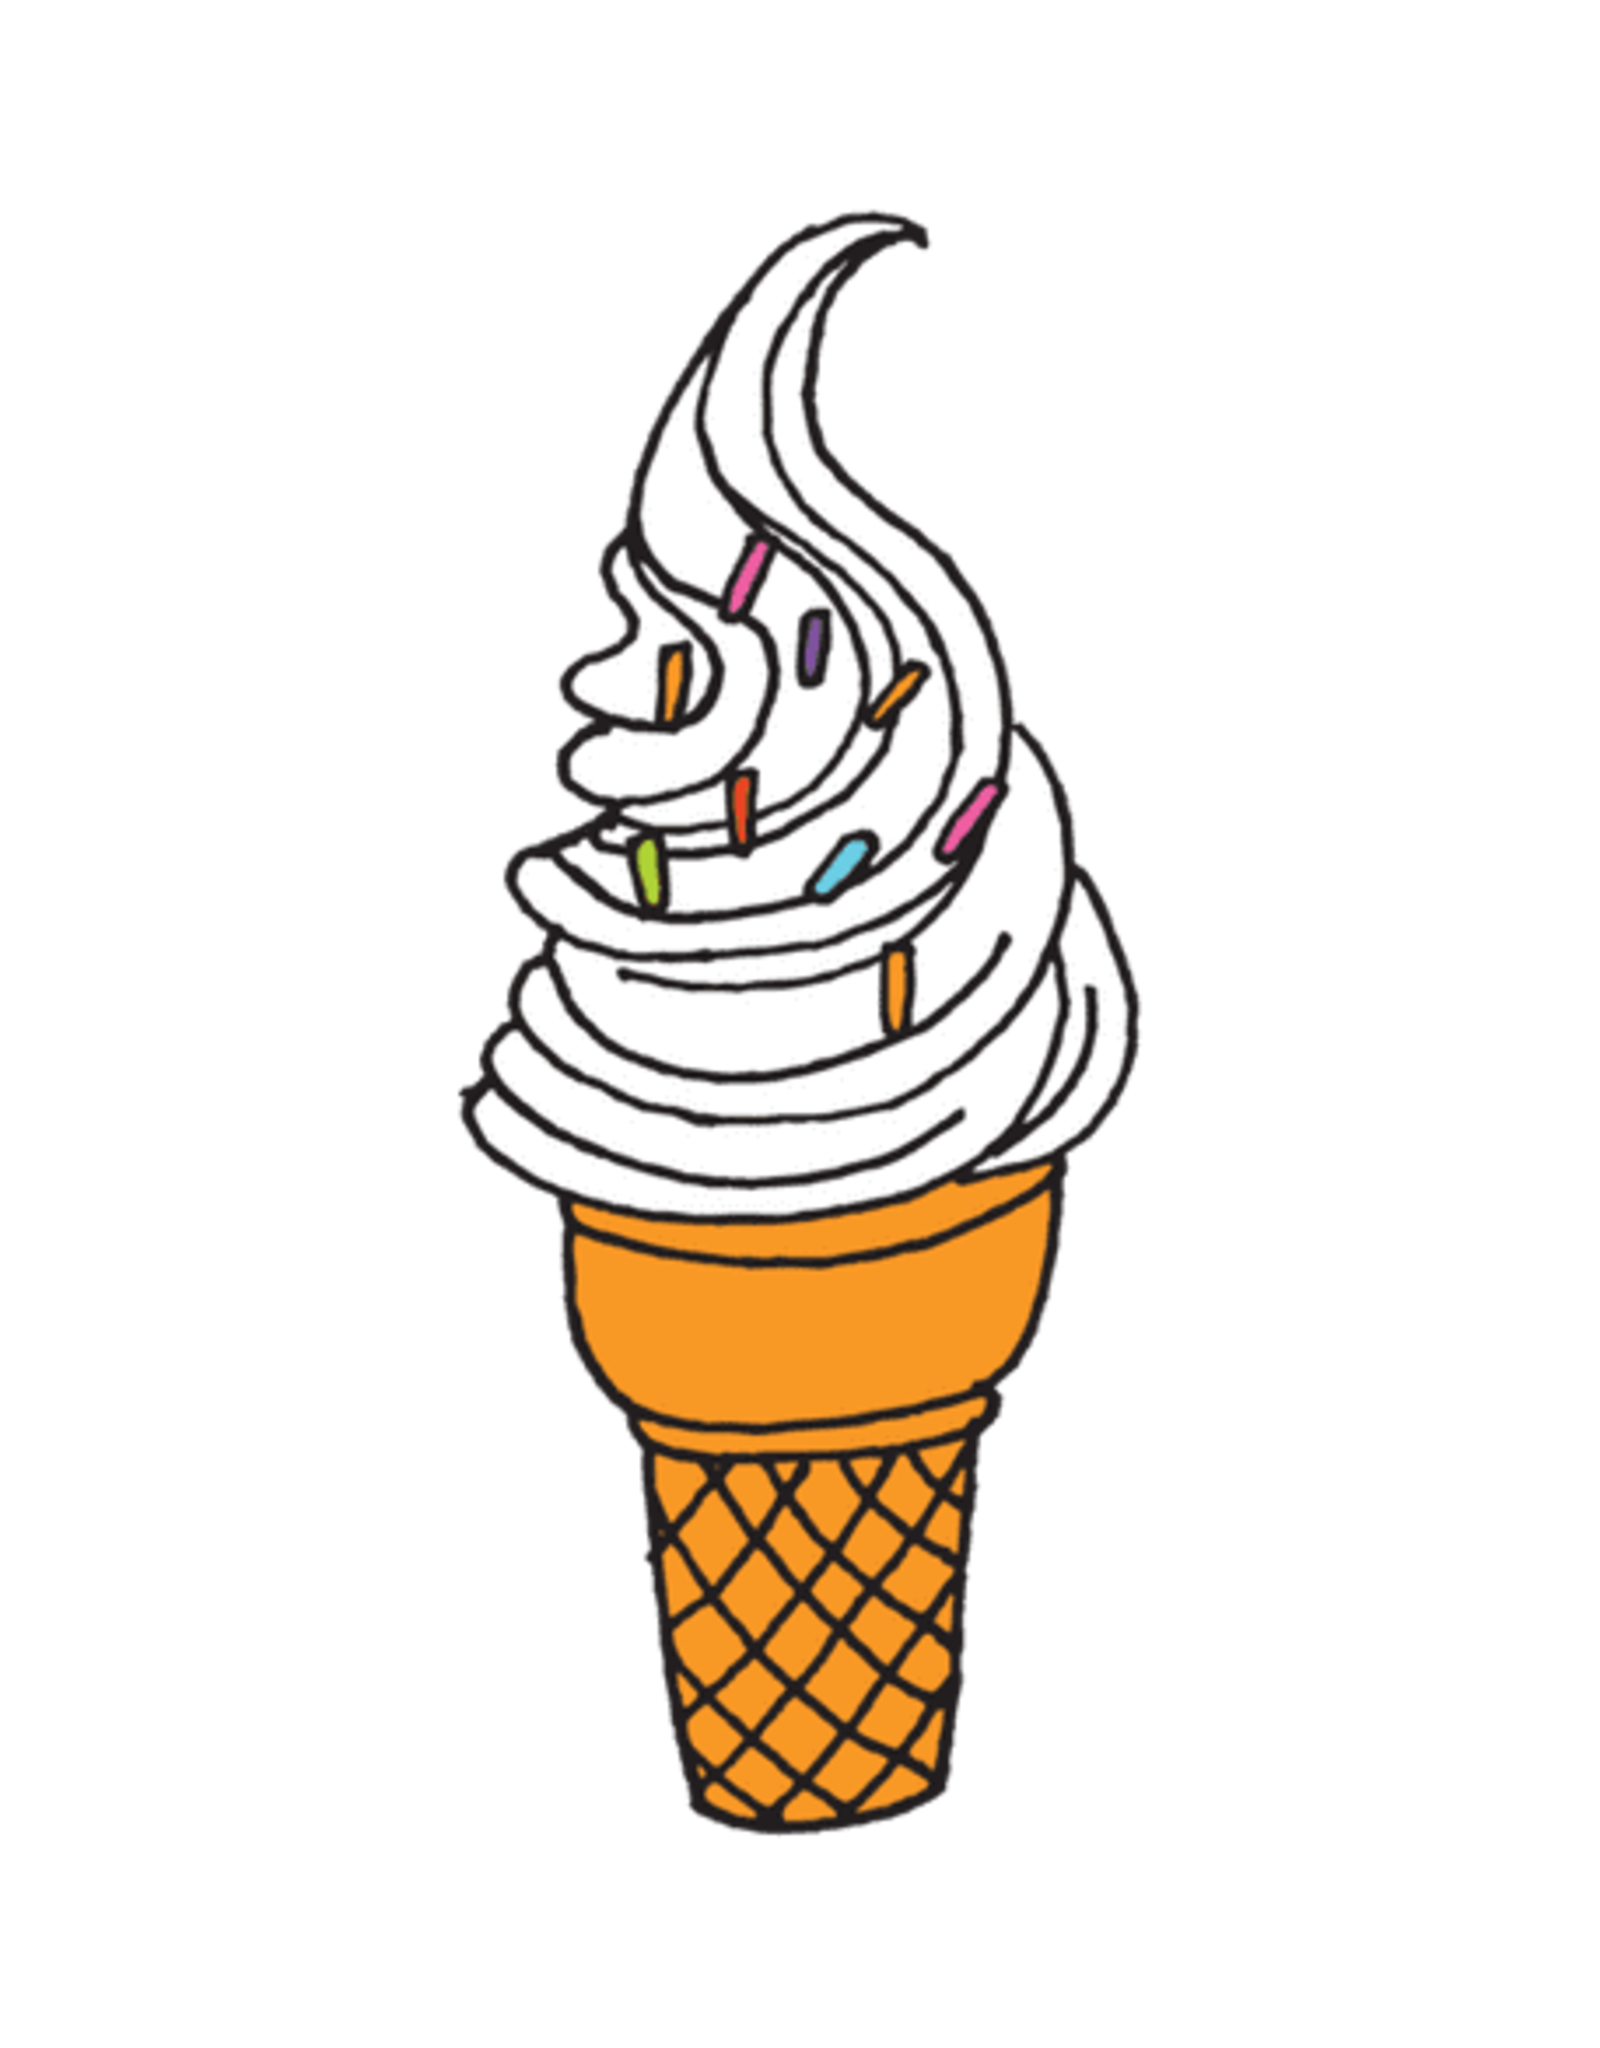 "TATOUAGES TEMPORAIRES : SOFT SERVE PAR JULIA ROTHMAN - 1.5"" X 3"""